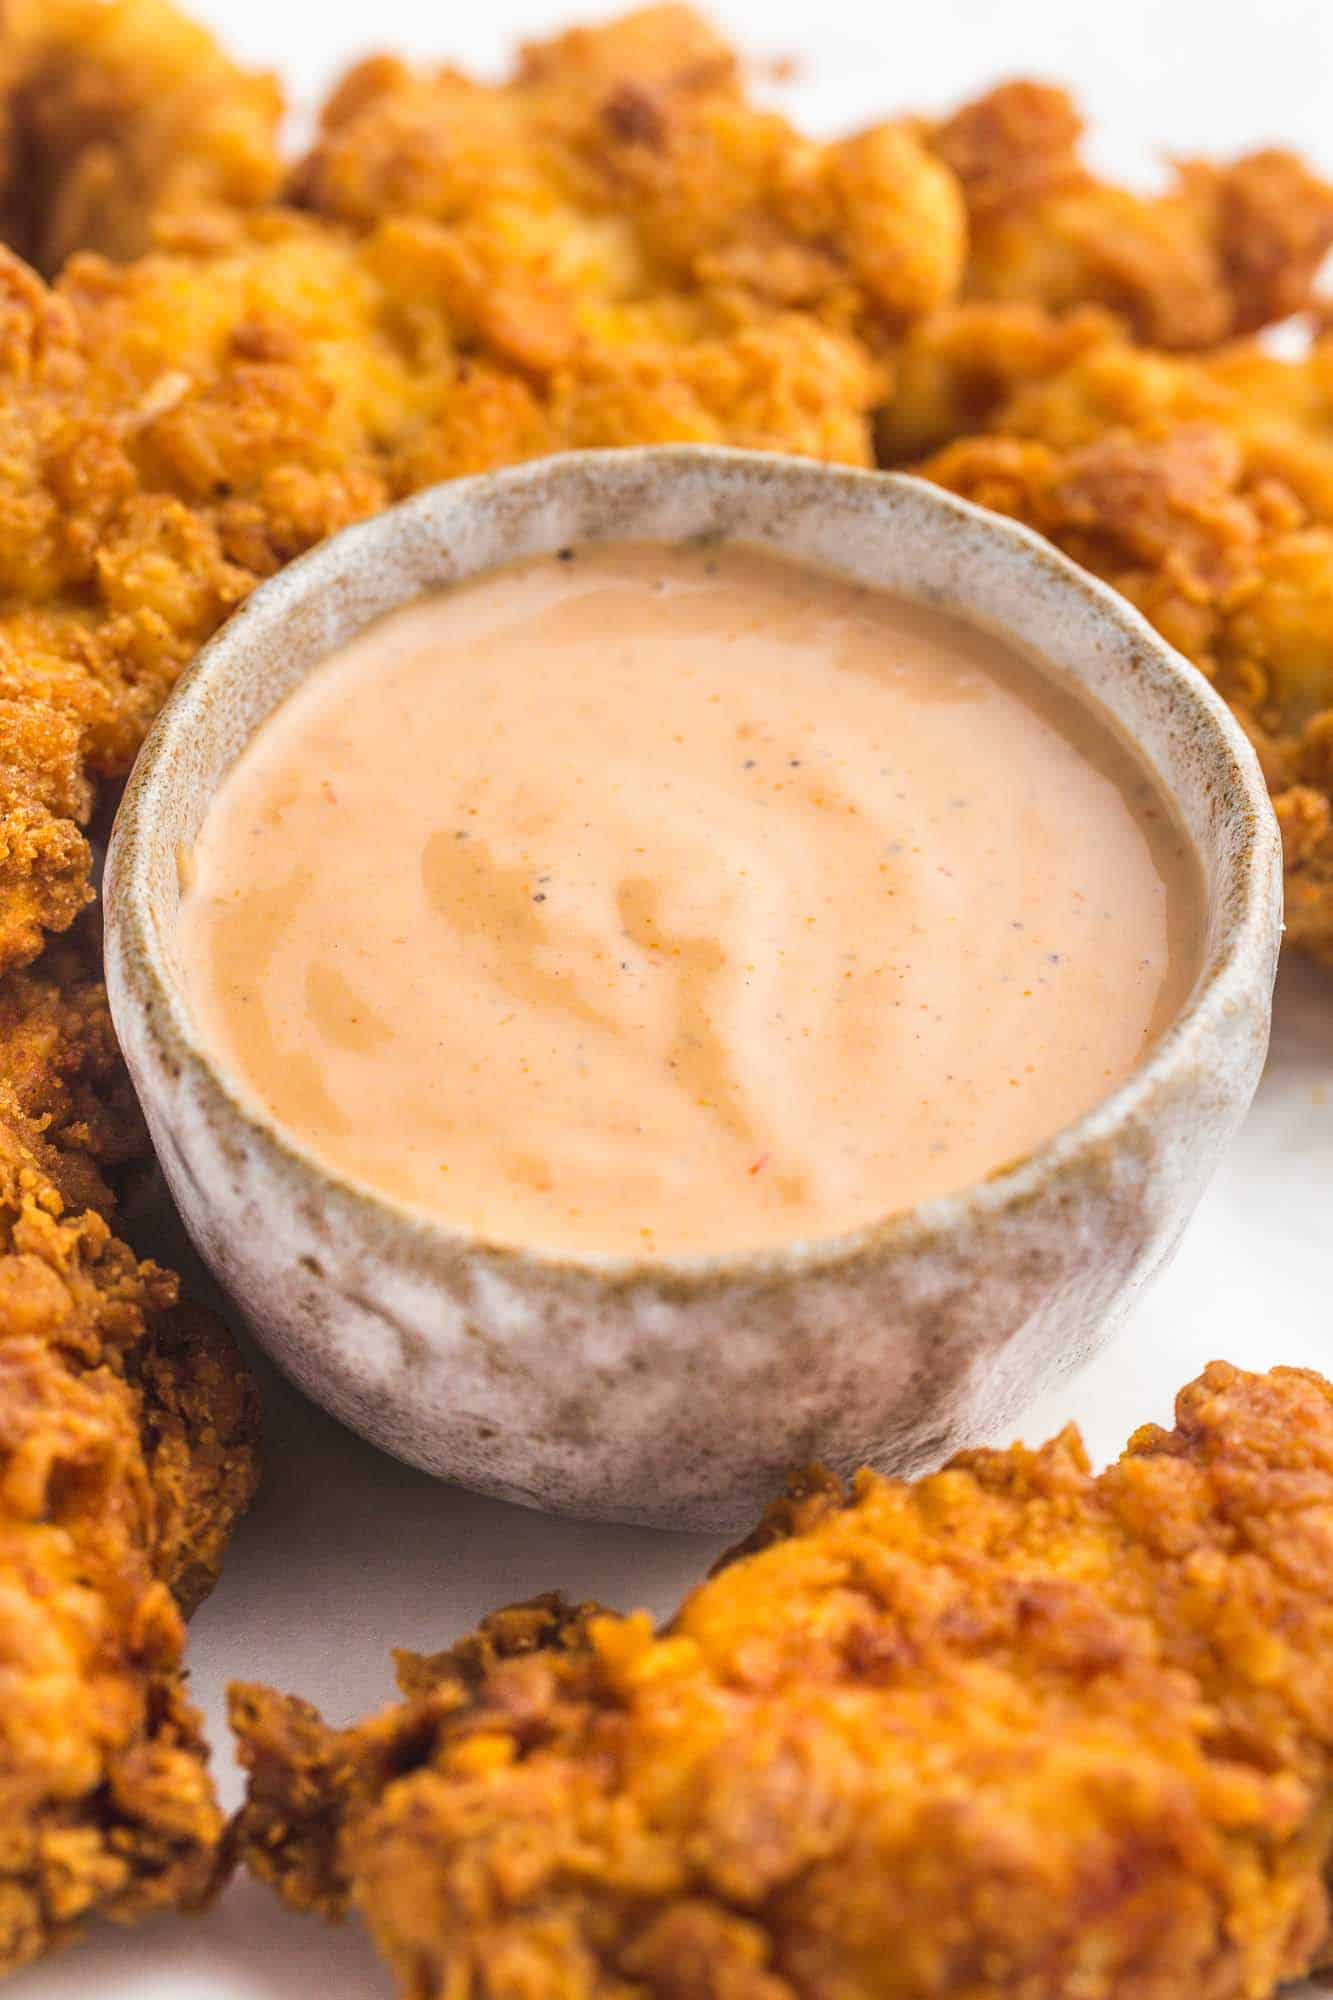 A small bowl with Cane's dipping sauce, and fried chicken tenders on the side